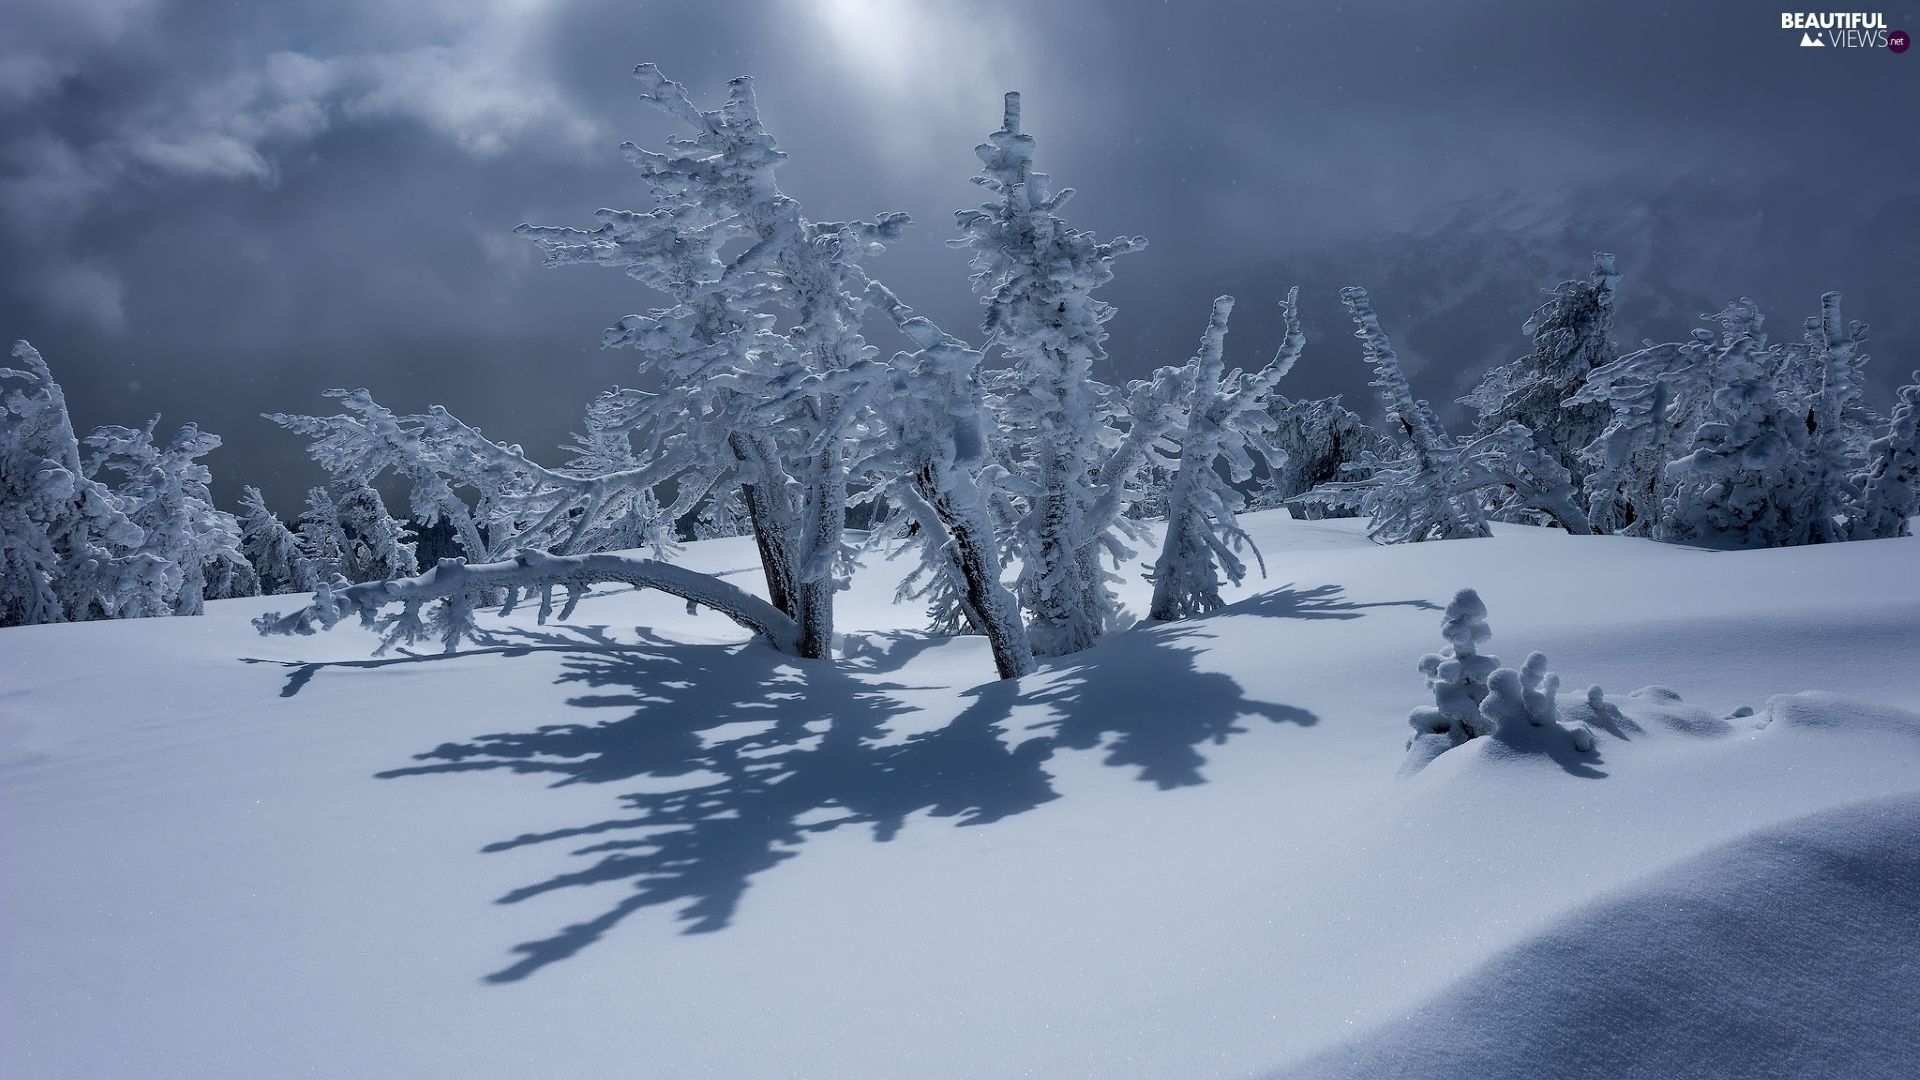 Snowy, winter, viewes, Bush, trees, snow